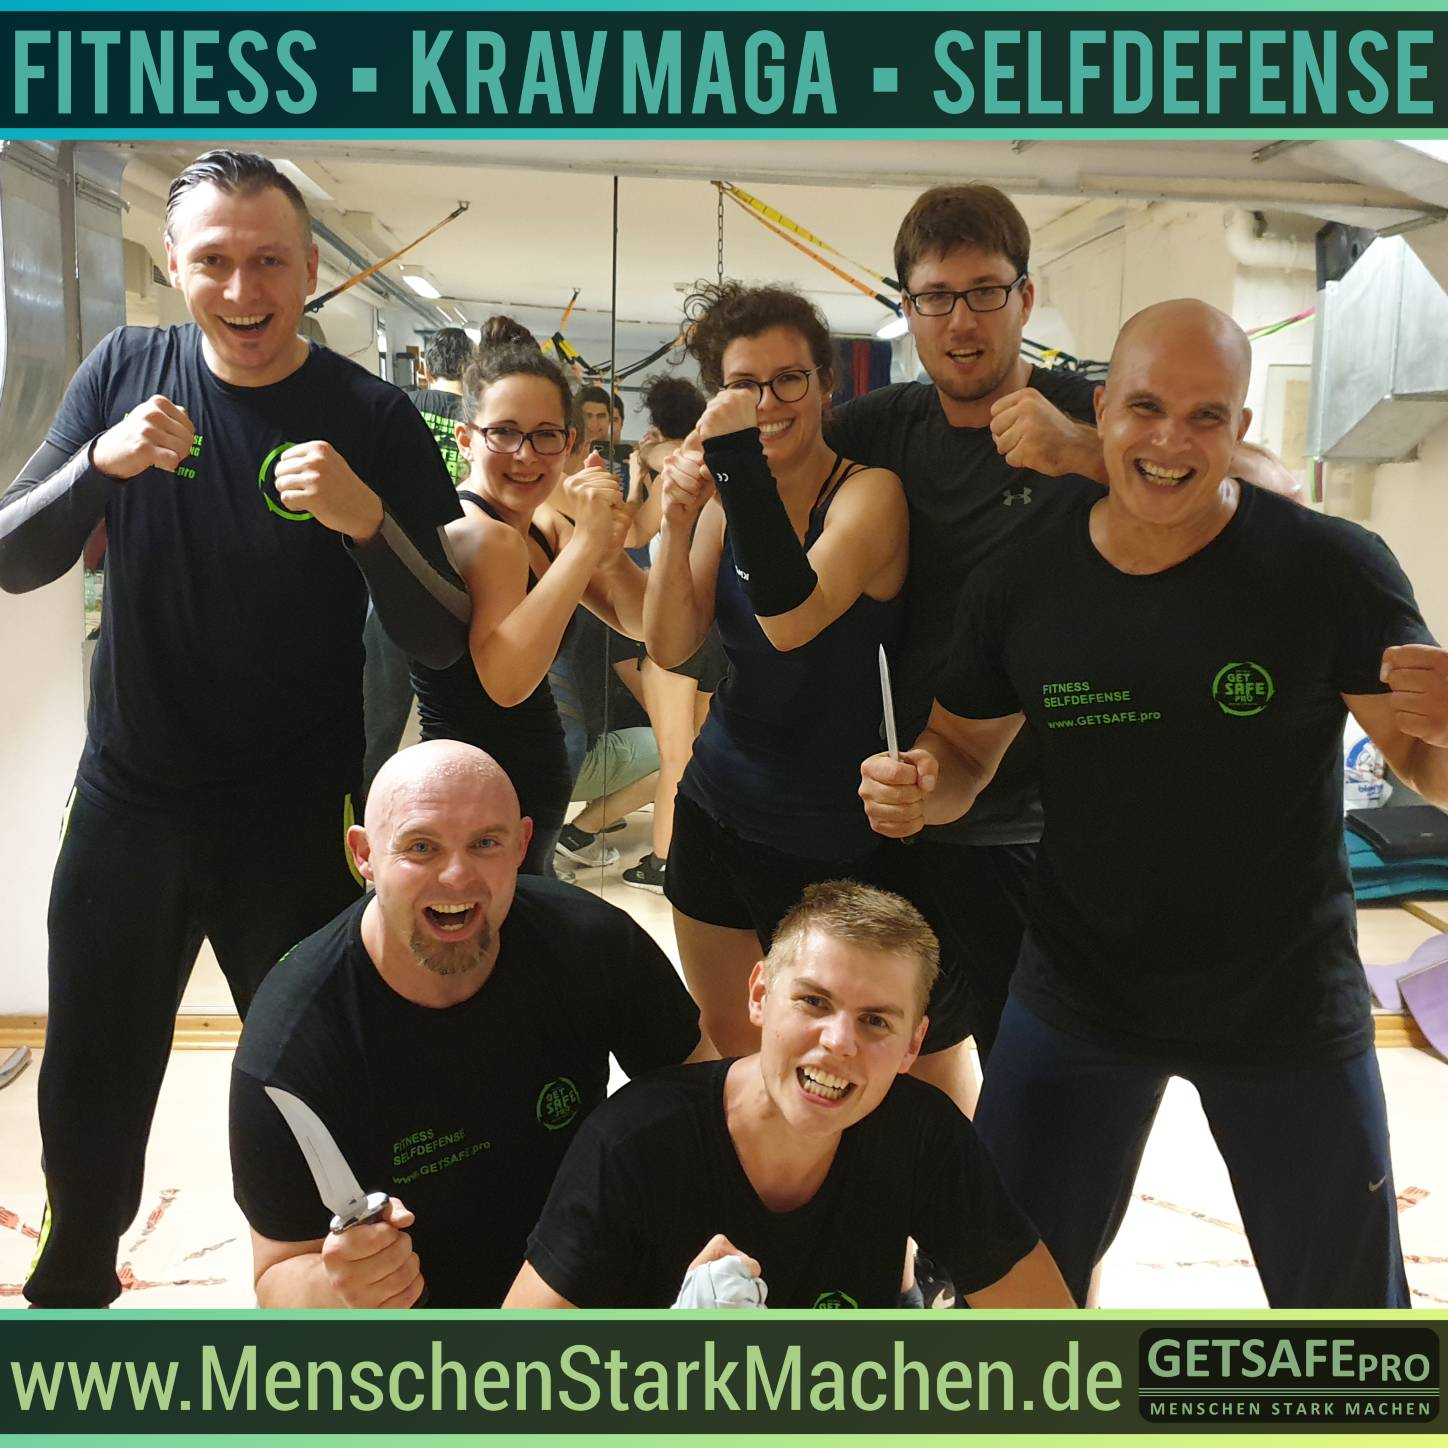 GETSAFEpro Krav Maga Mainz Selbstverteidigung Fitness Training (2)